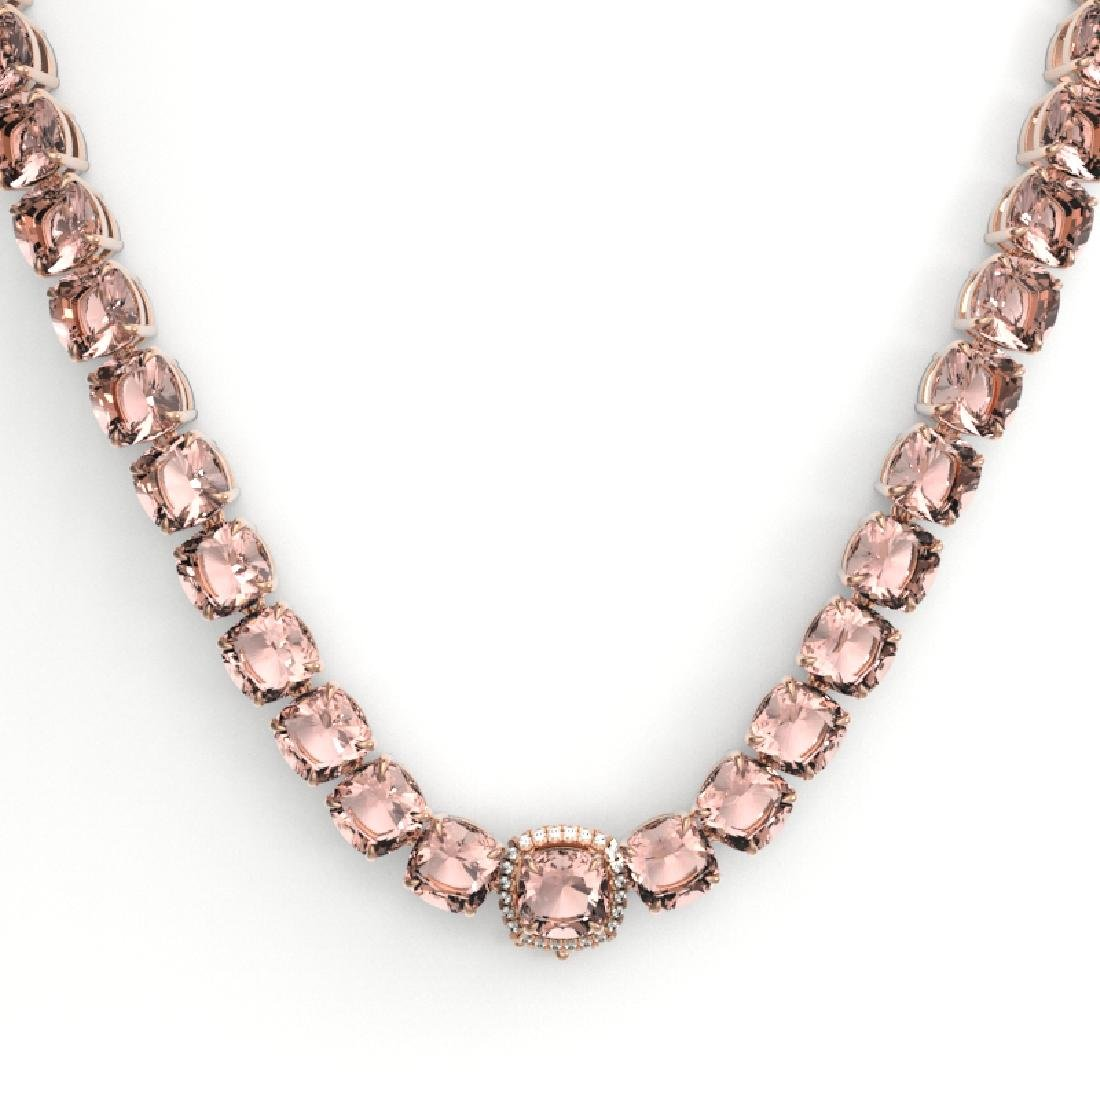 87 CTW Morganite & VS/SI Diamond Pave Necklace 14K Rose - 2